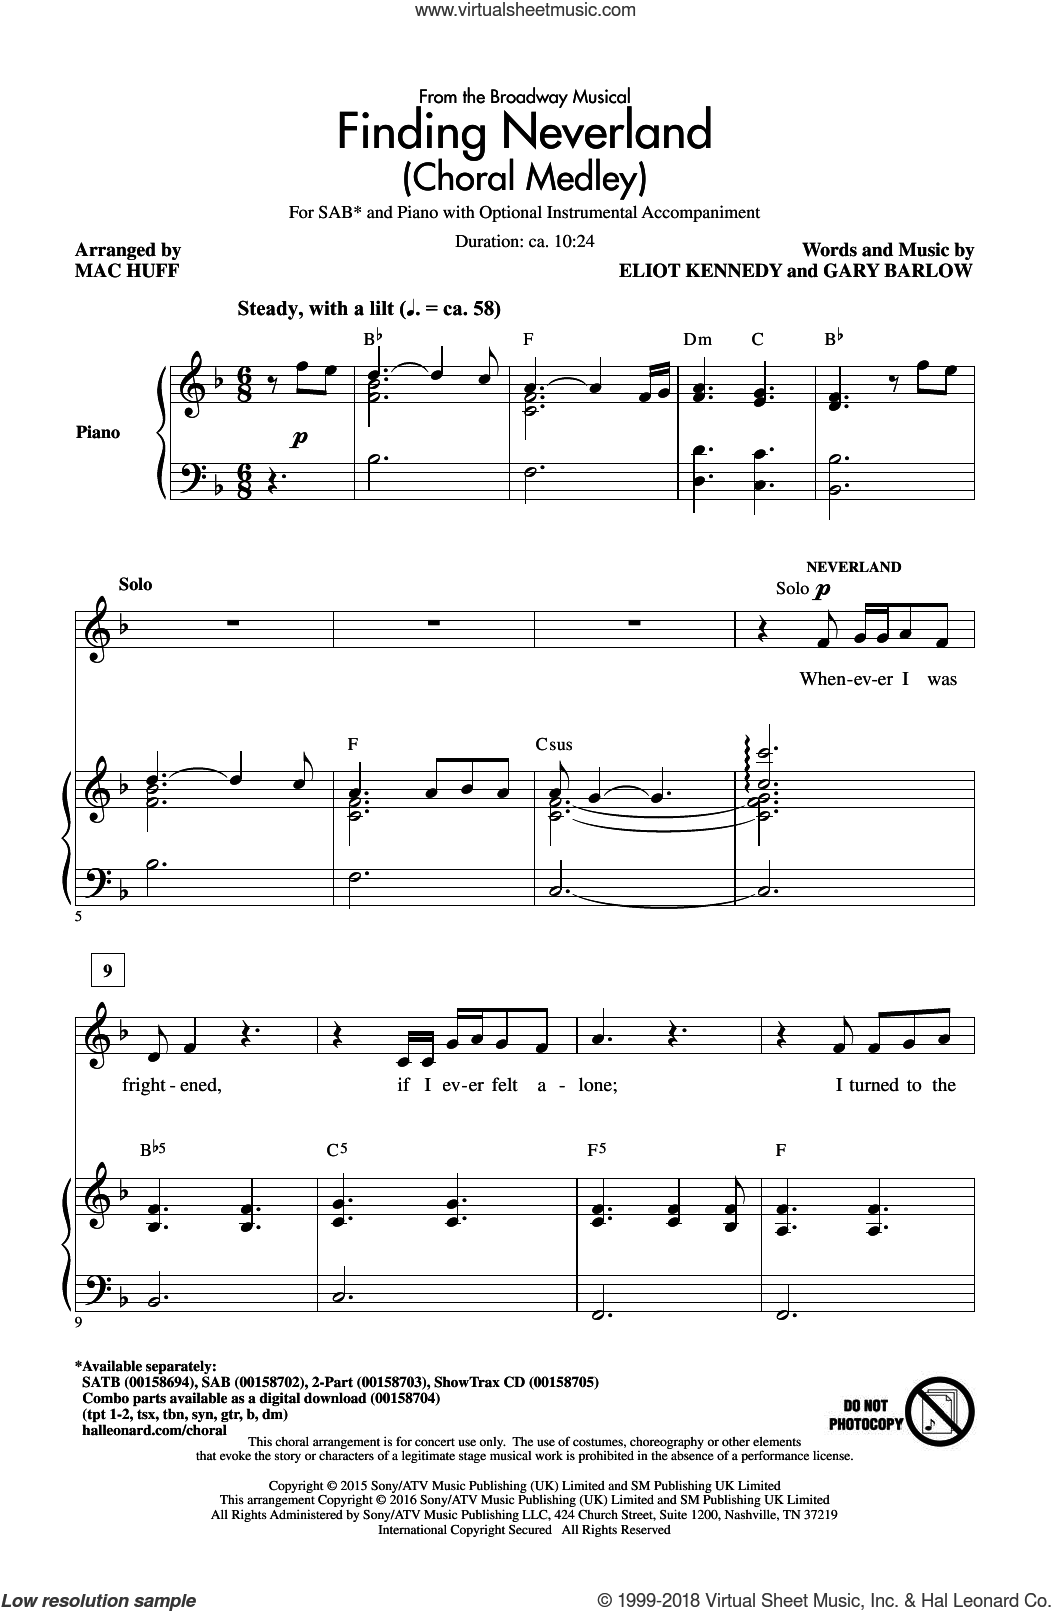 Finding Neverland (Choral Medley) sheet music for choir and piano (SAB) by Gary Barlow, Mac Huff and Eliot Kennedy. Score Image Preview.